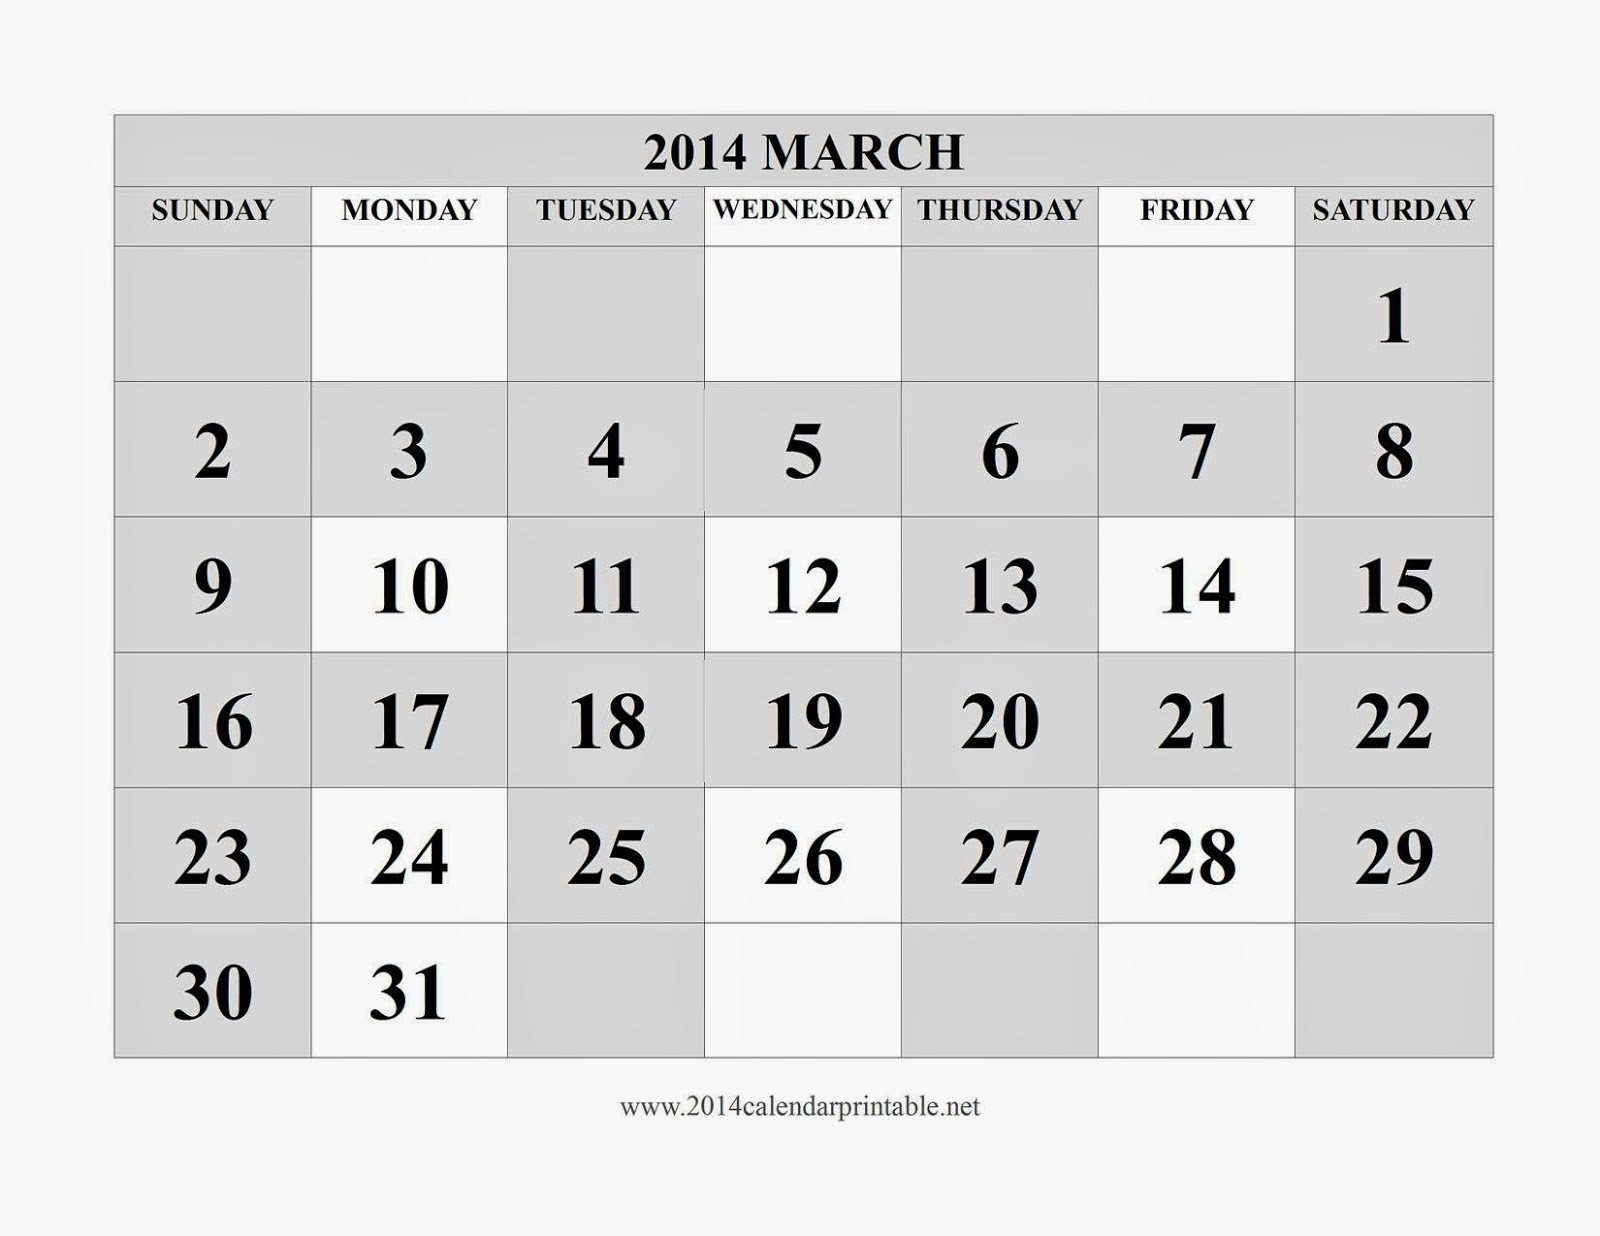 FREE IS MY LIFE: FREEISMYLIFE March 2014 Calendar - Don\'t You Just ...